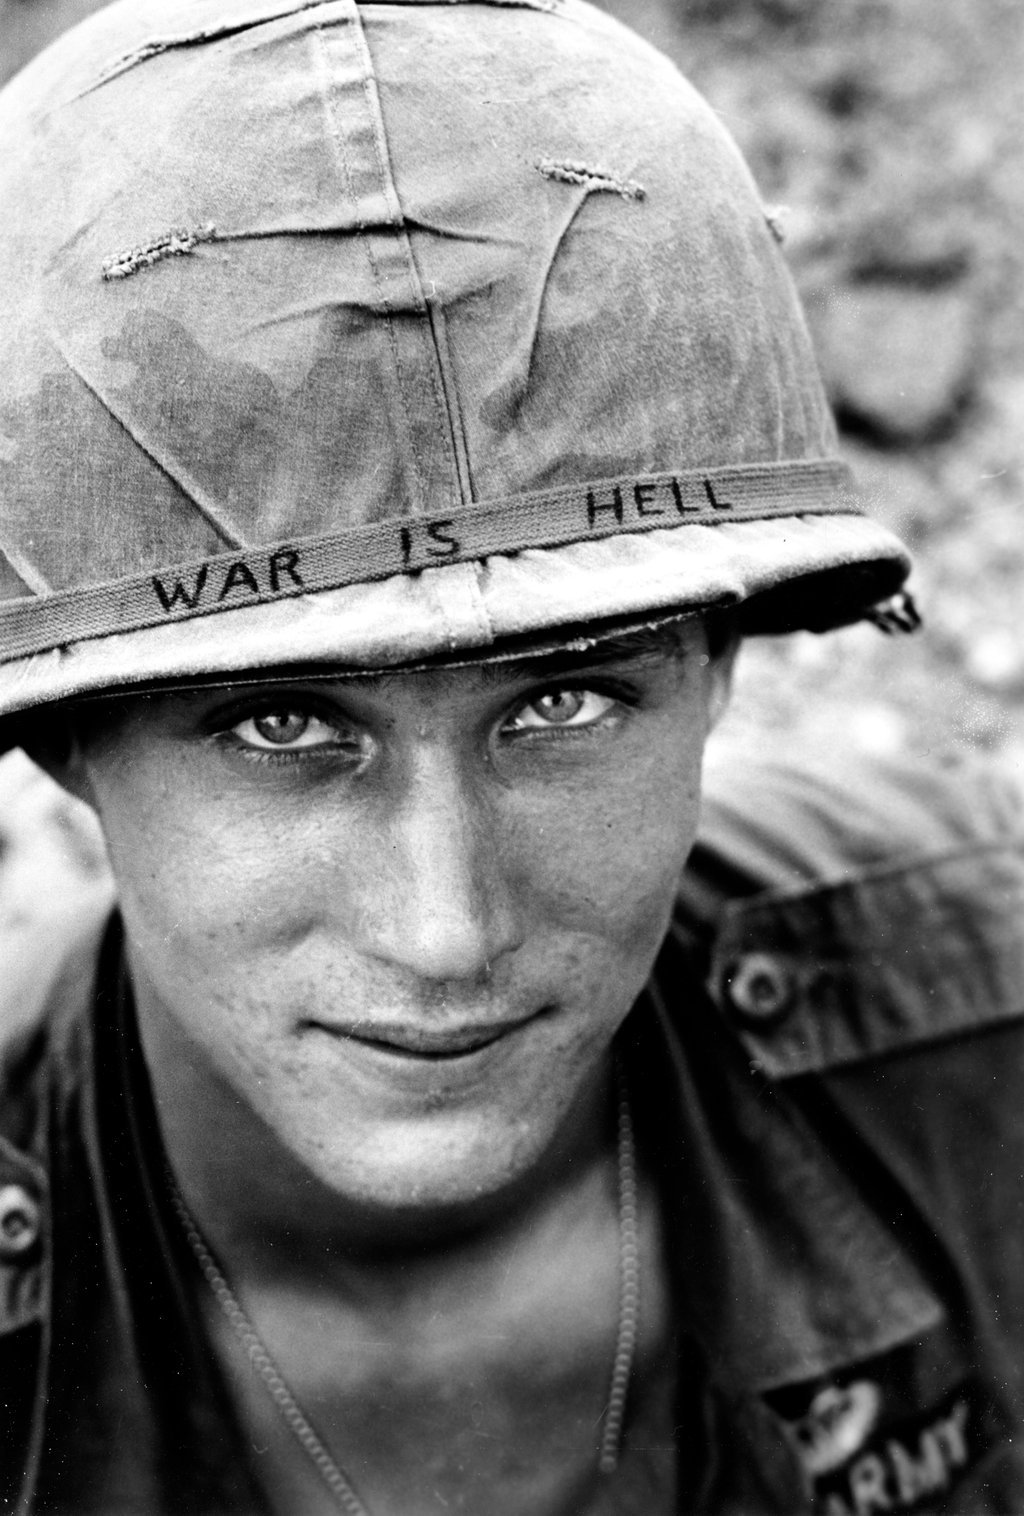 An unidentified US soldier in 1965. By Horst Faas